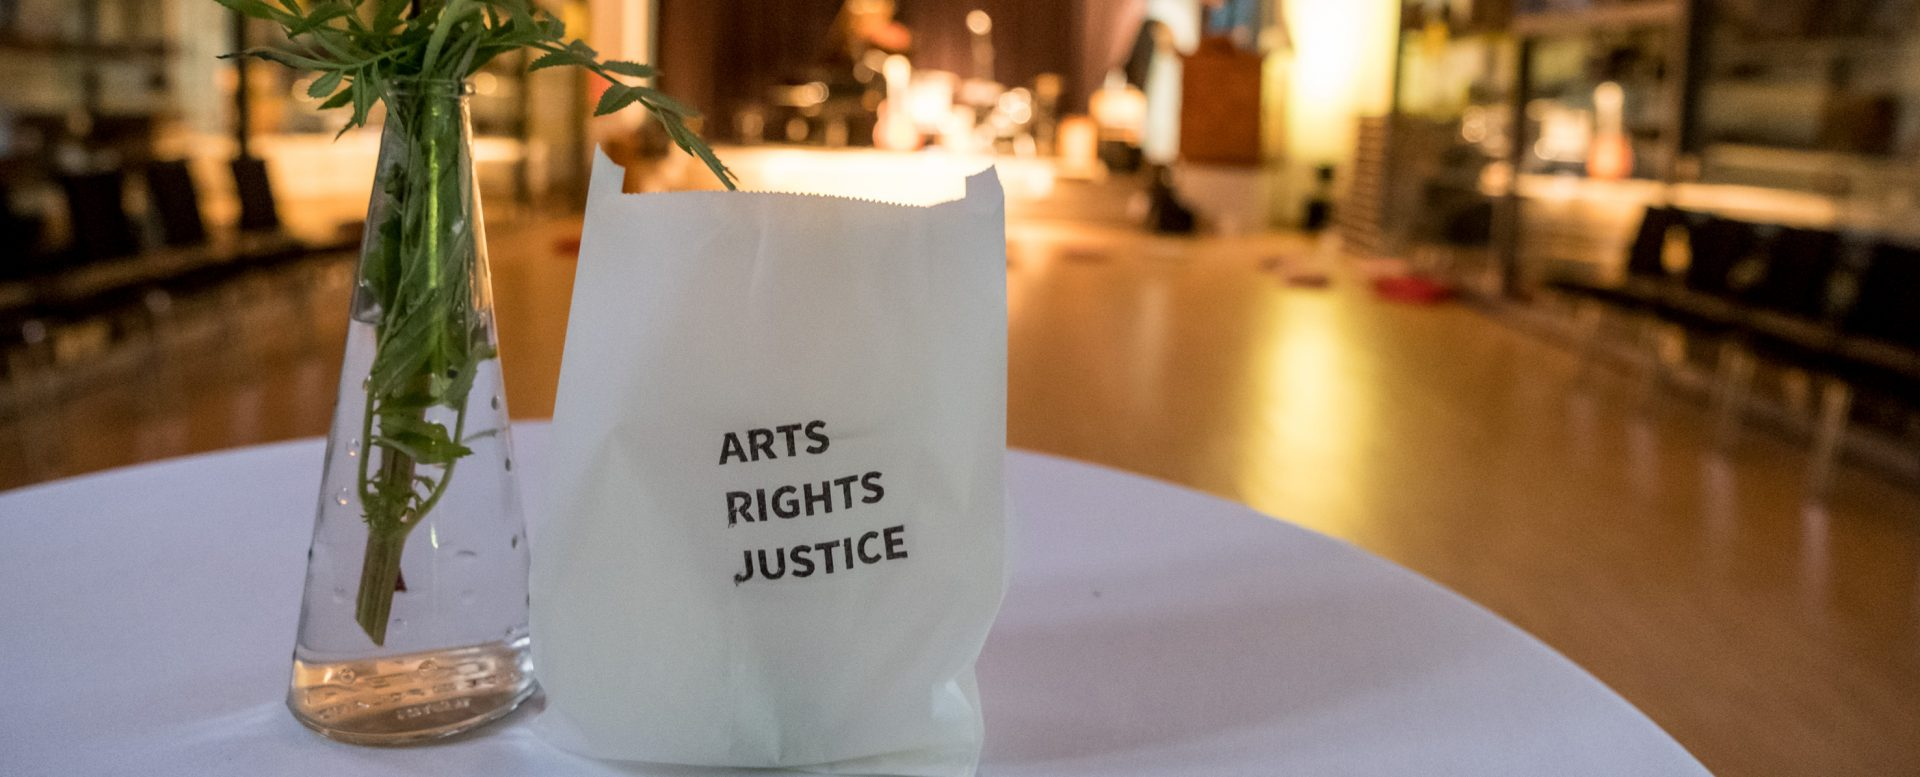 ARTS RIGHTS JUSTICE